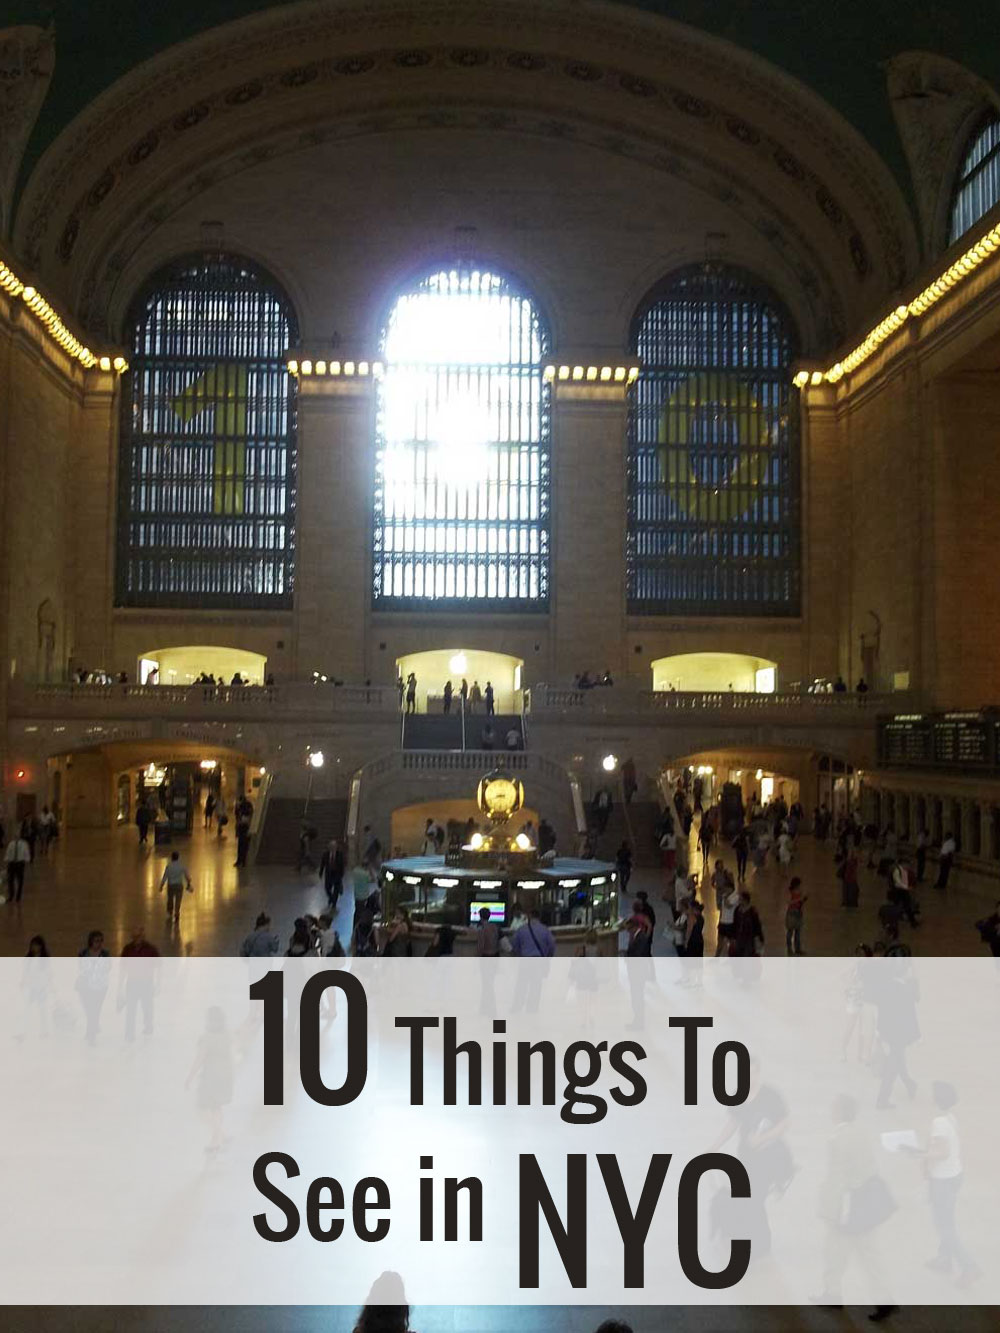 10 Things To See in NYC